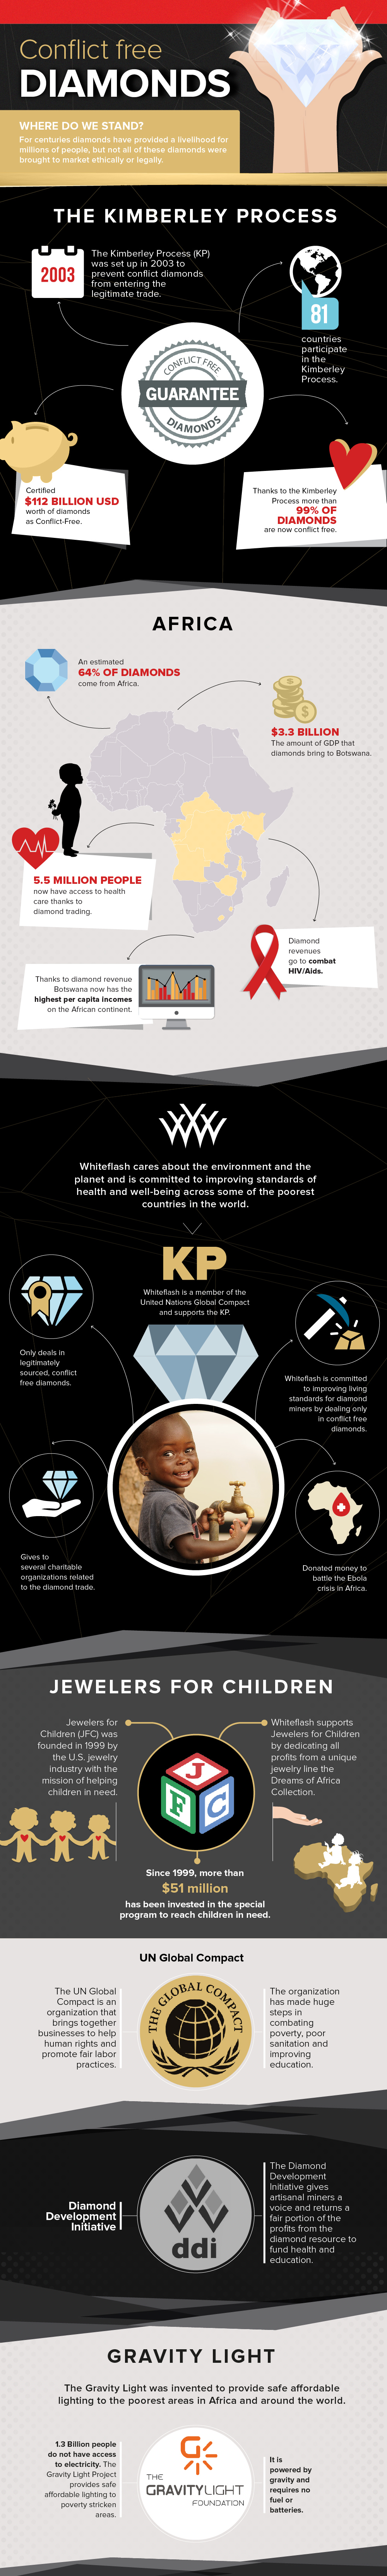 Conflict Free Diamonds Infographic